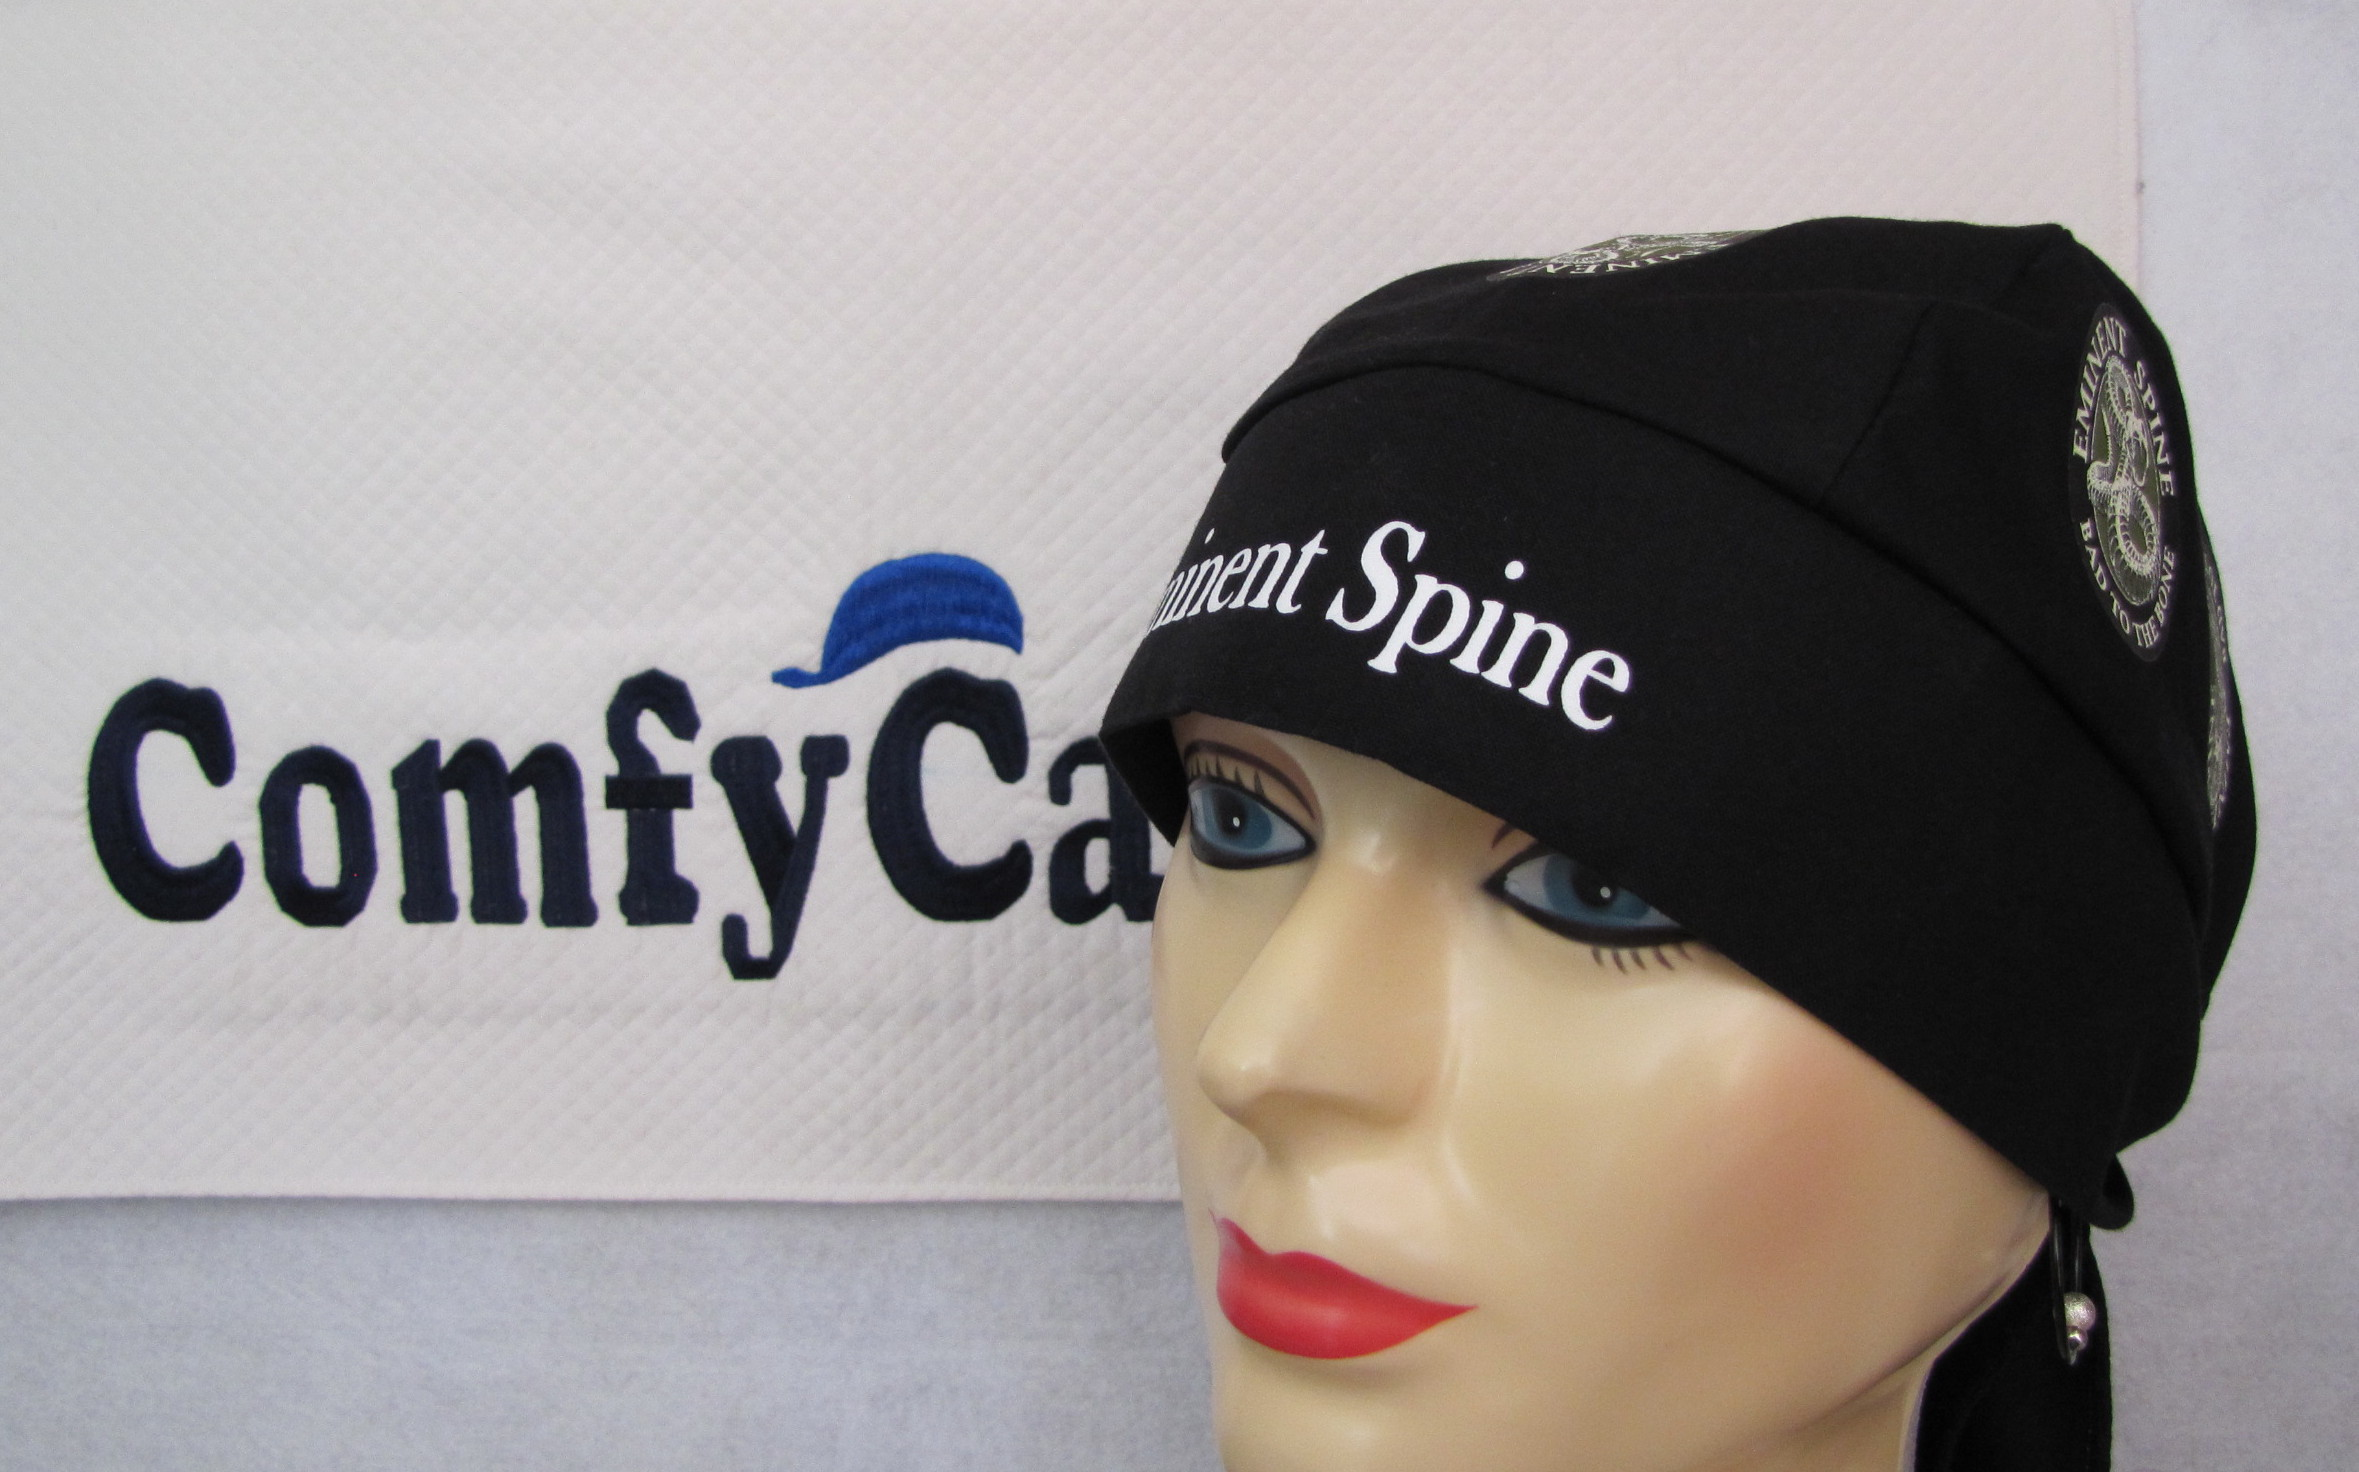 b4076bb92 Skull cap views · ComfyCaps Clearance · Online Store Powered by Storenvy